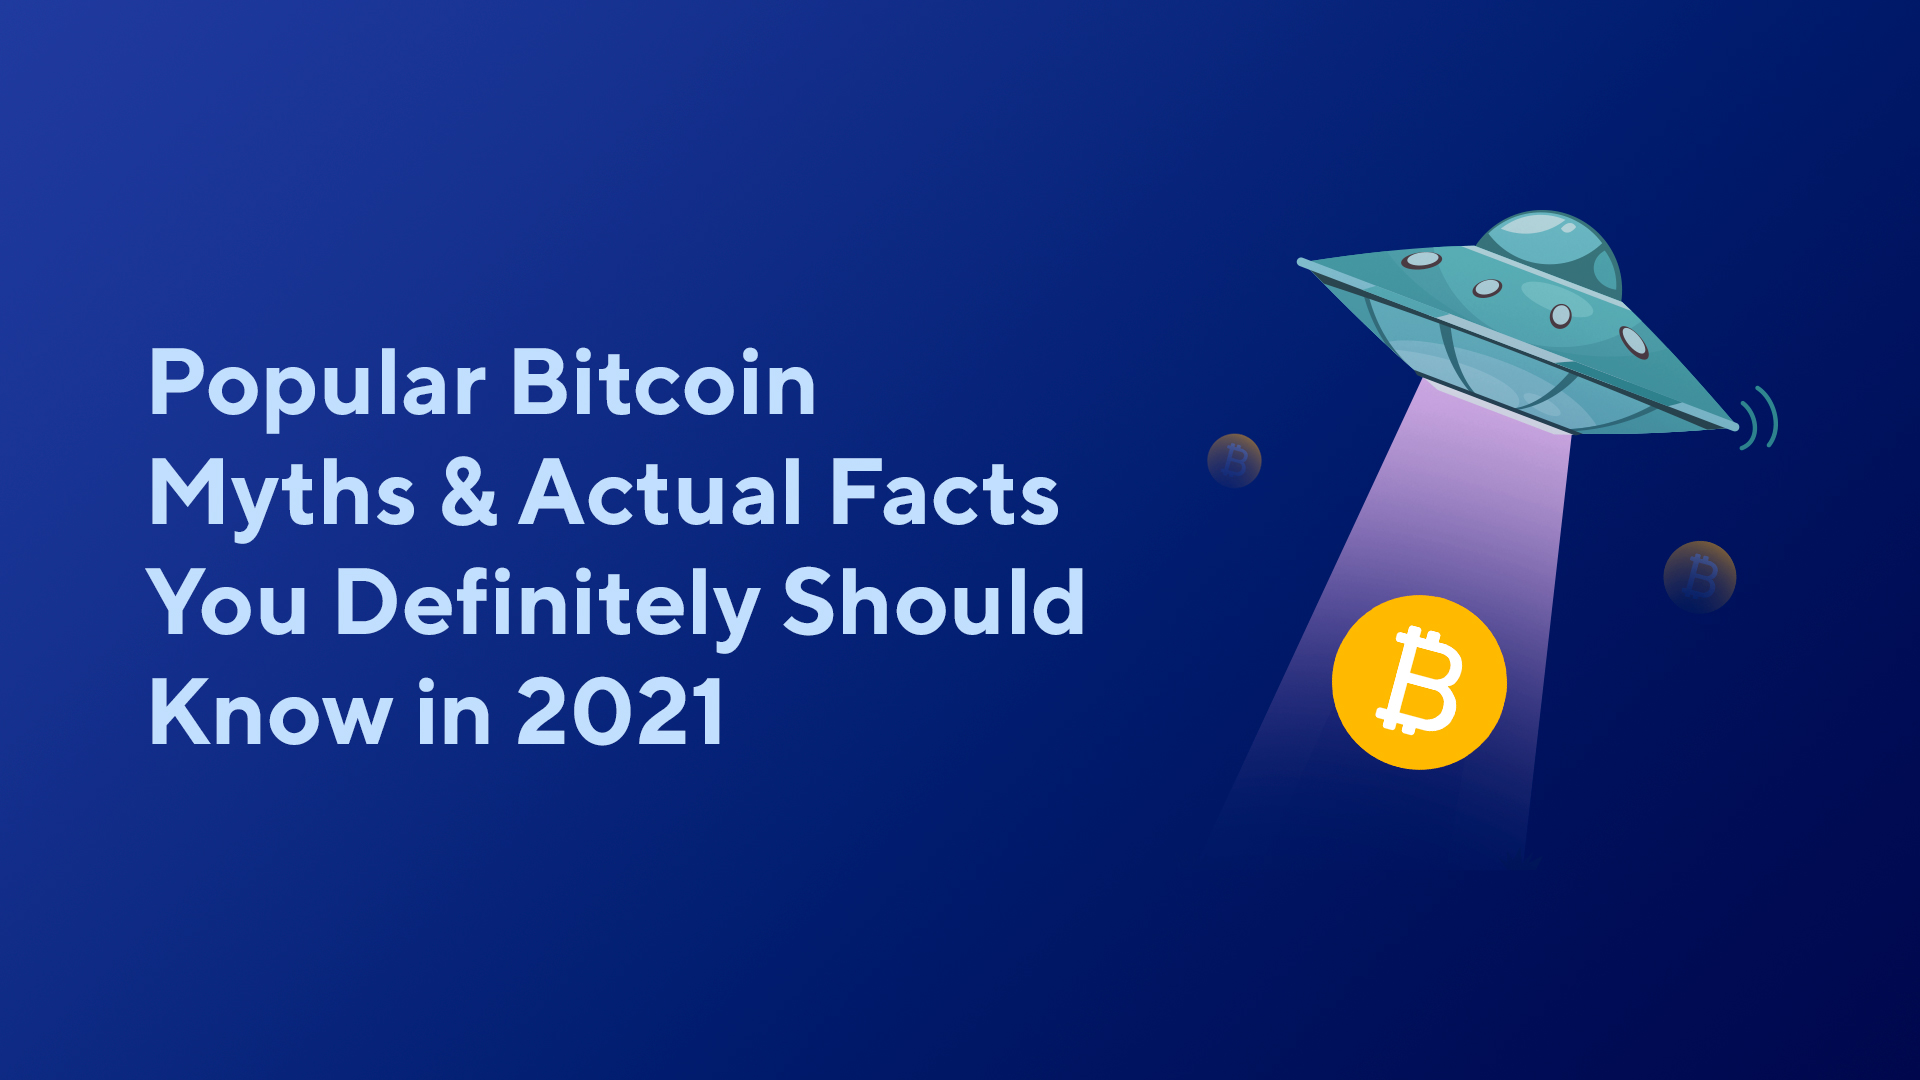 Popular Bitcoin Myths & Actual Facts You Definitely Should Know in 2021